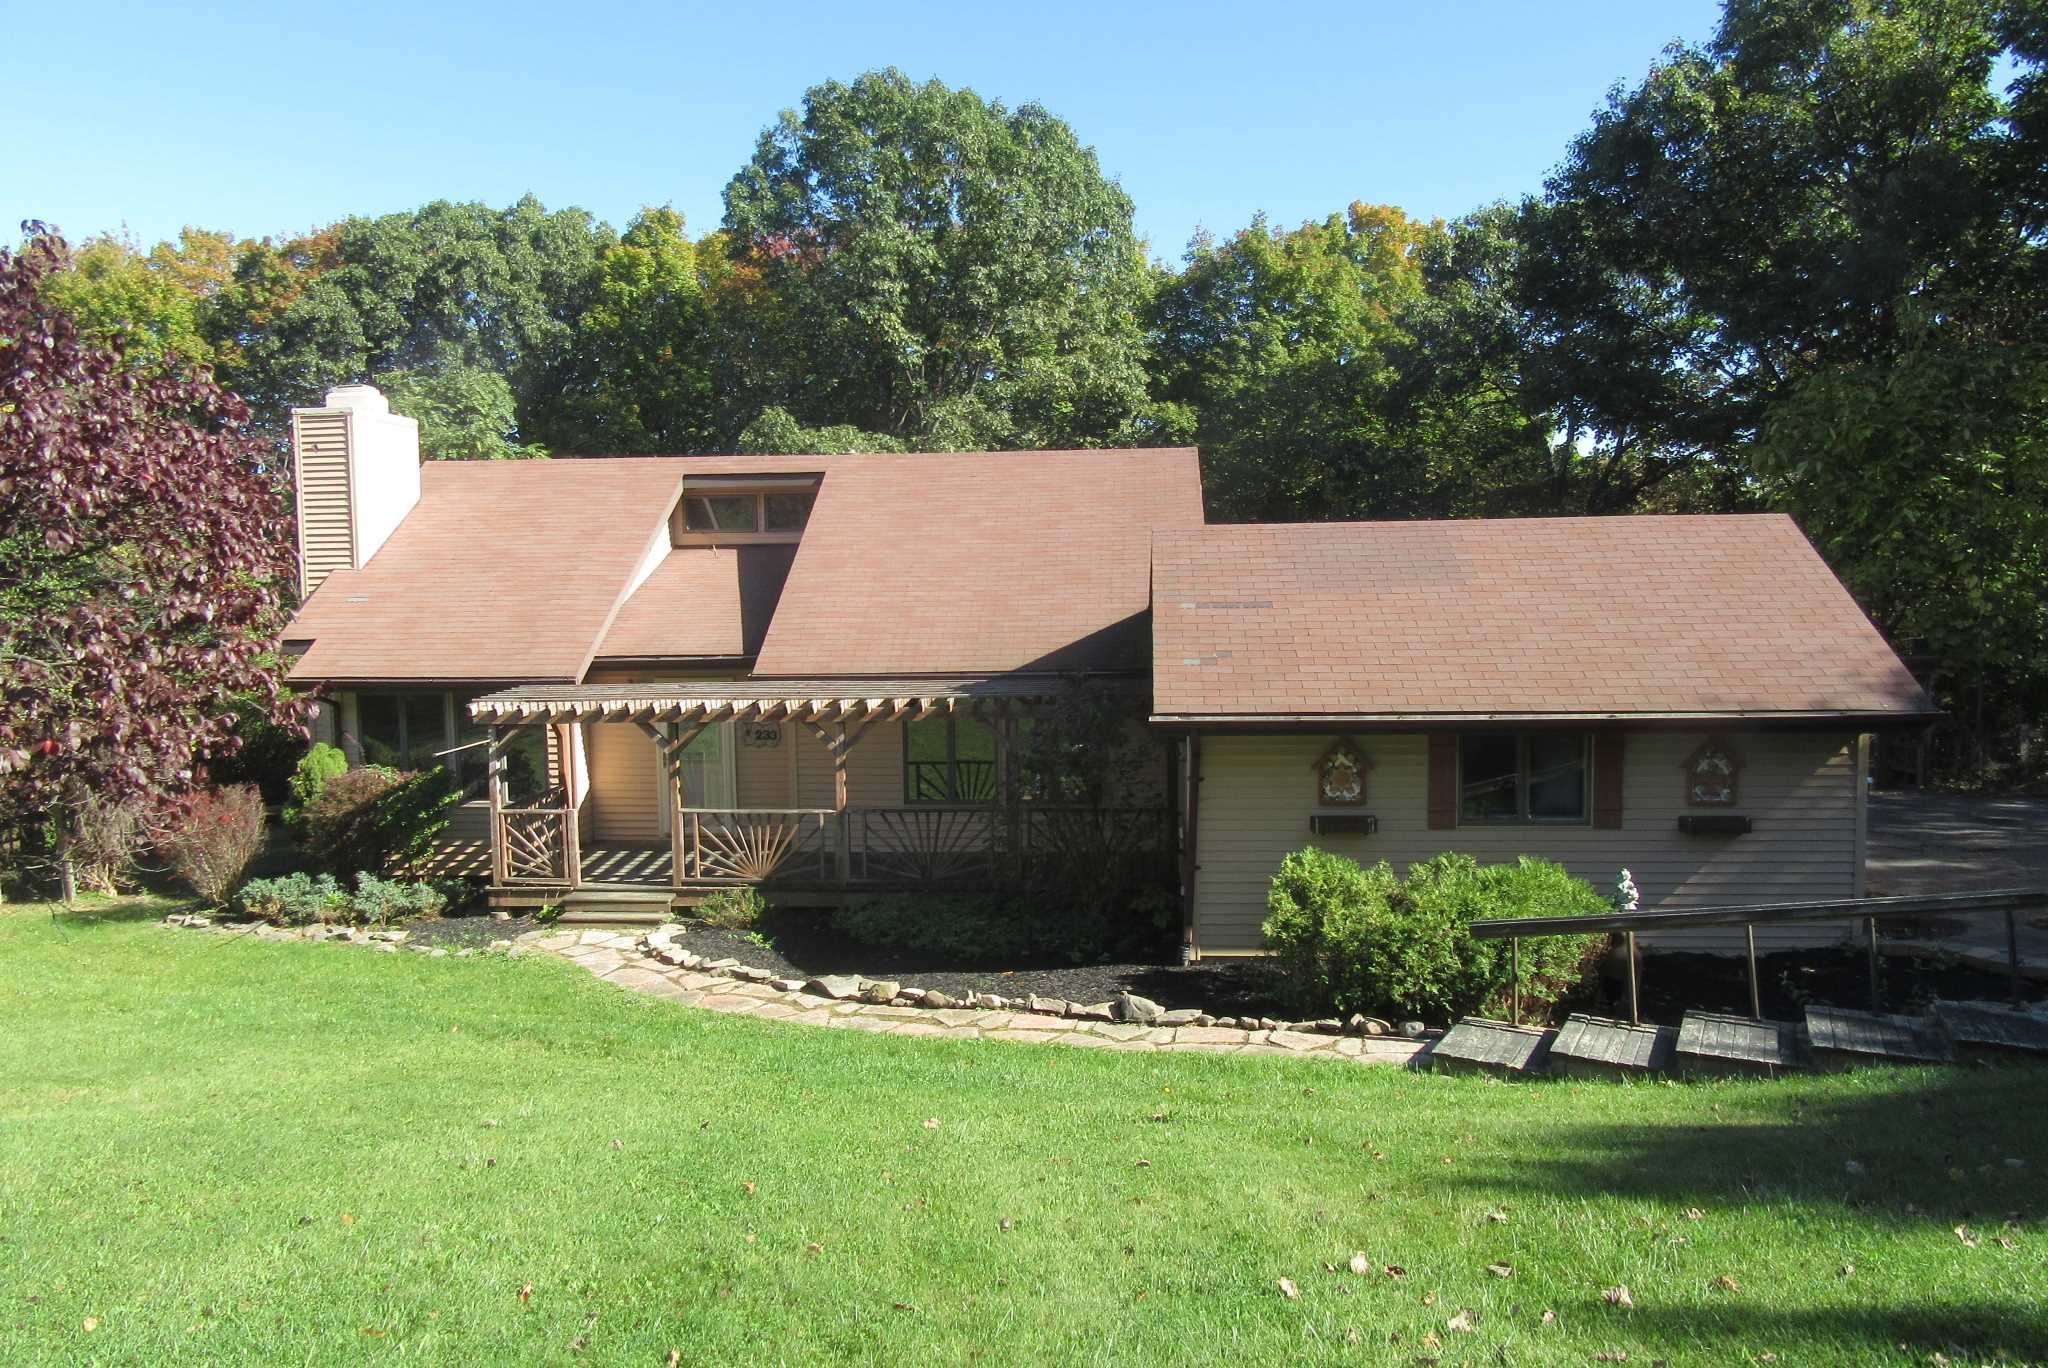 Single Family Home for Sale at 233 HILLCREST MANOR 233 HILLCREST MANOR Marlboro, New York 12542 United States